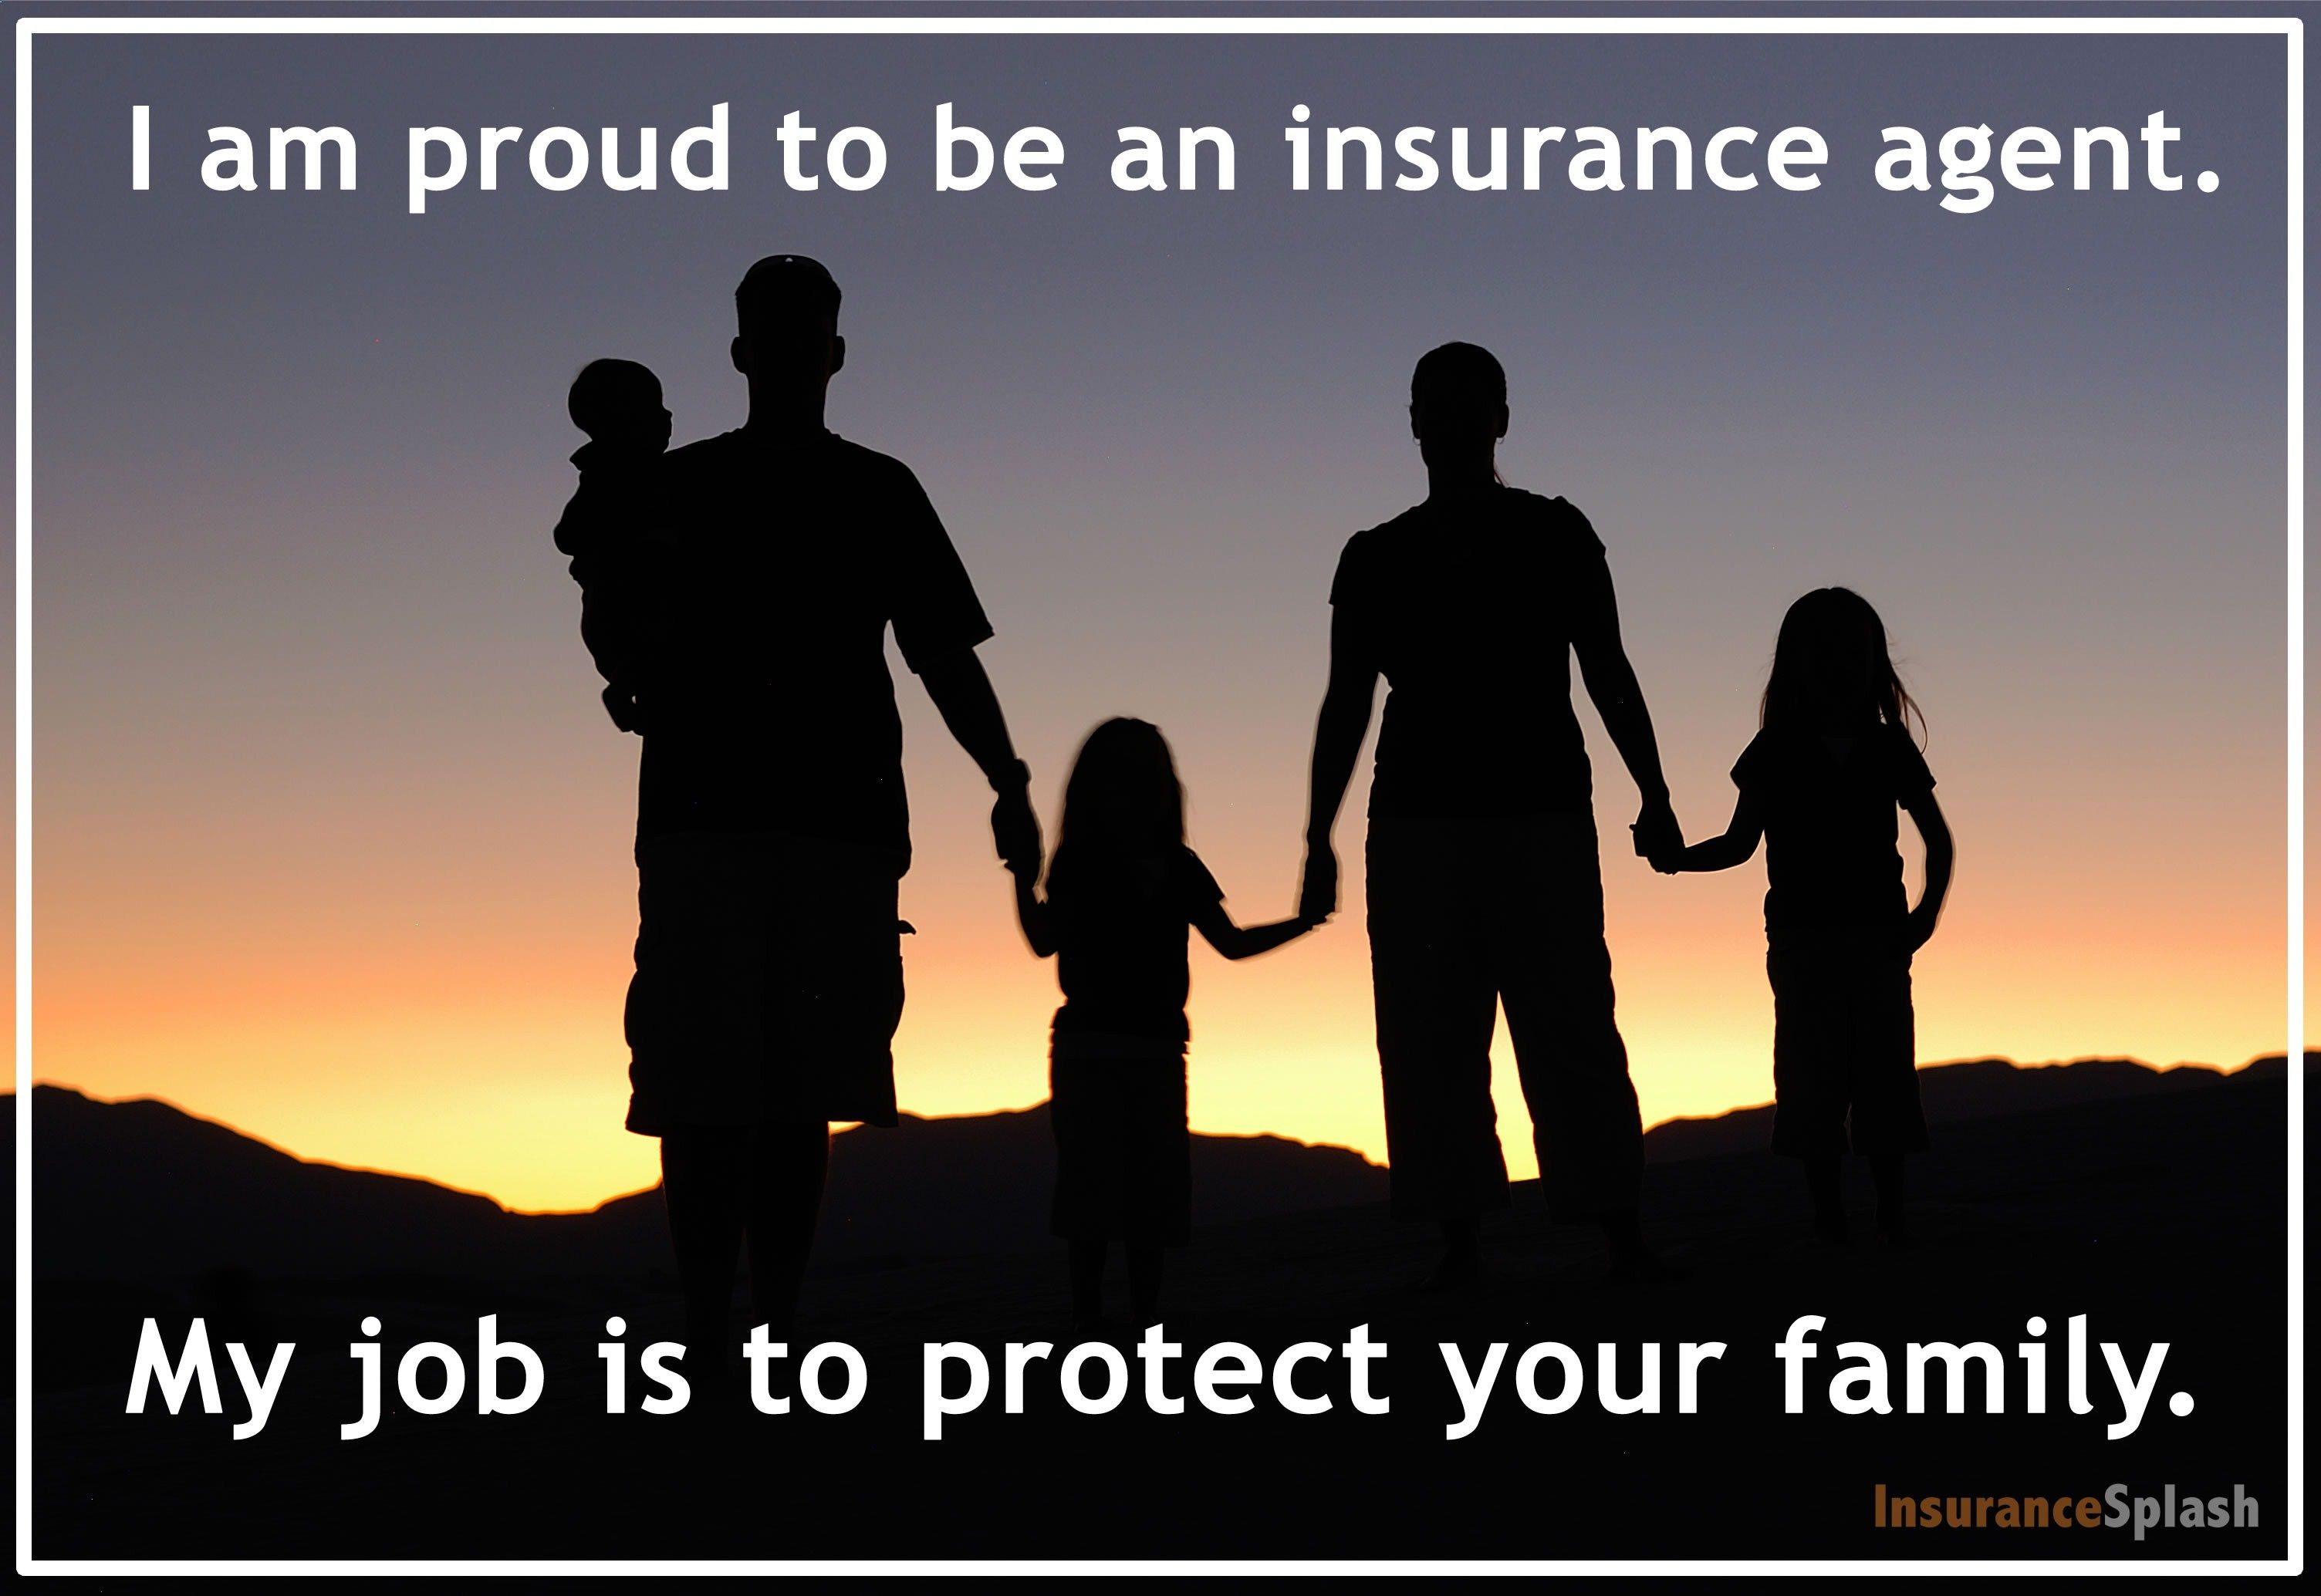 State Farm Insurance Quote An Insurance Agents Job Is To Protect Your Familythats Something